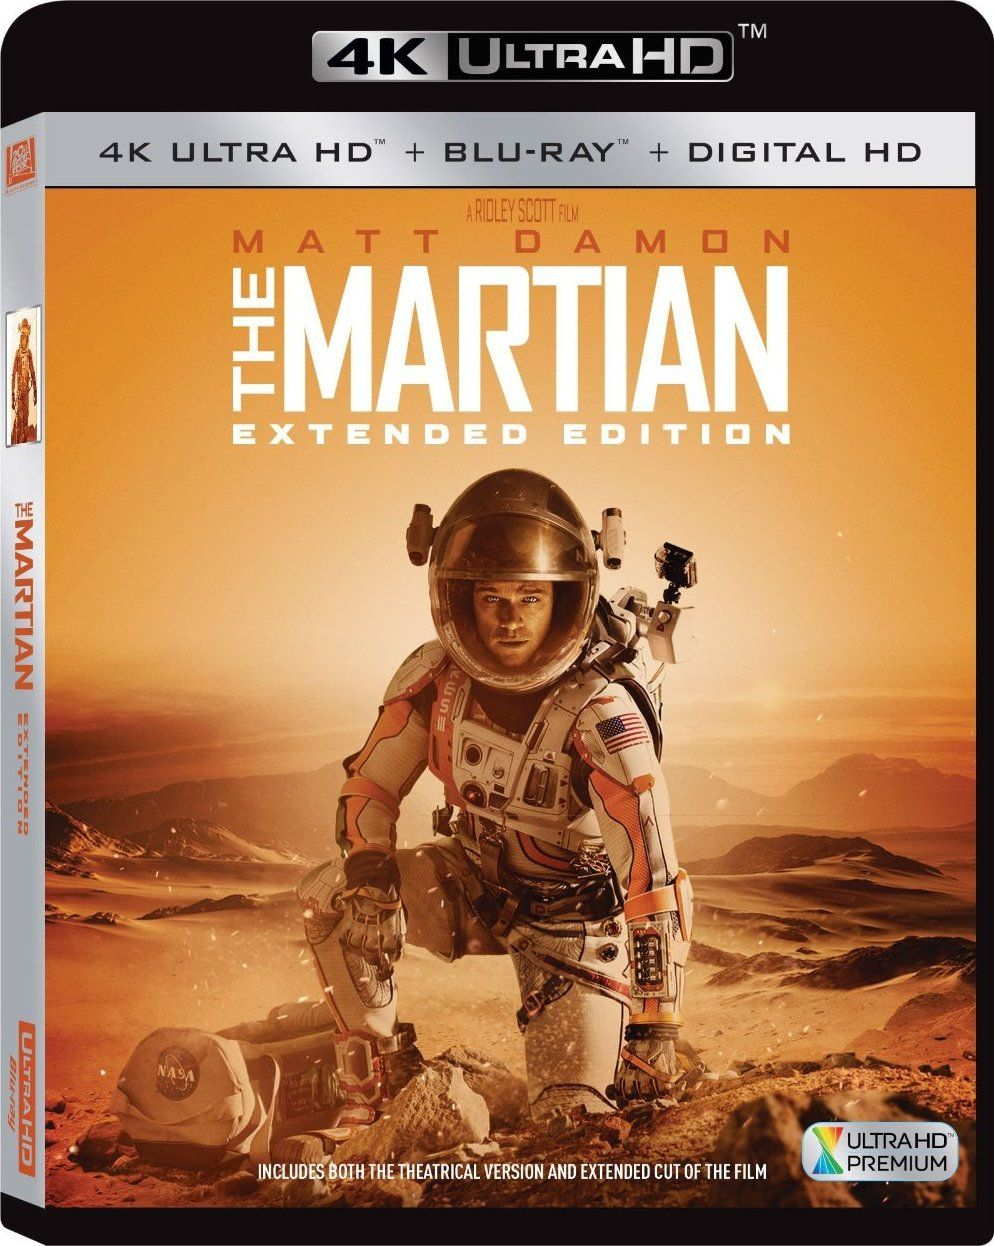 The Martian Extended Edition 2015 4k Ultra Hd Blu Ray With